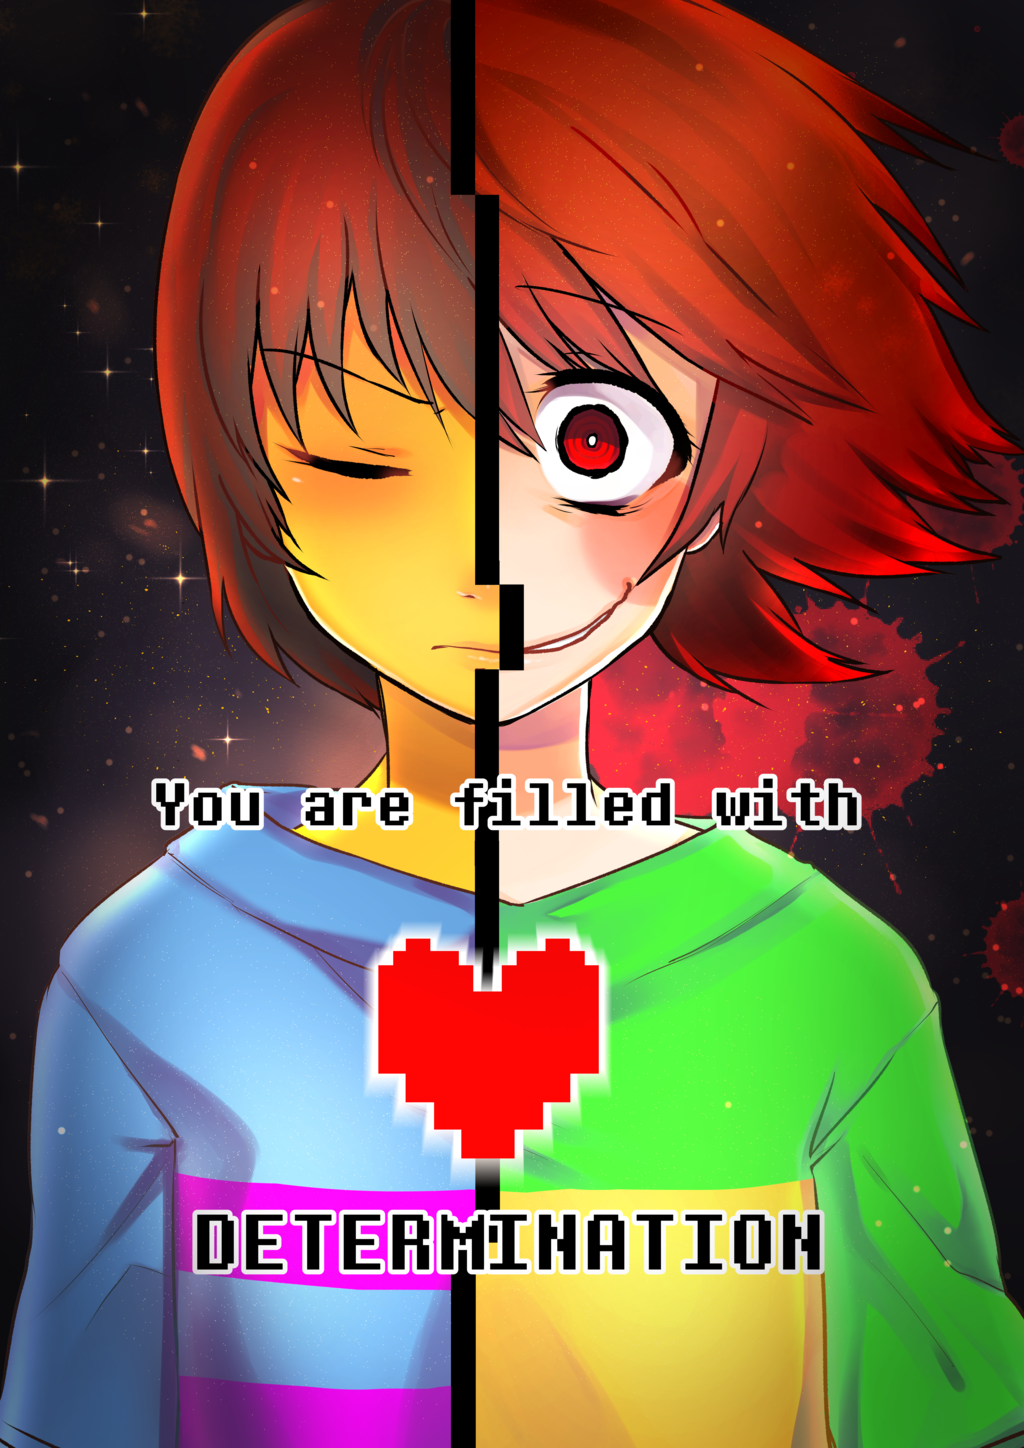 image determination chara and frisk undertale by maryryn nya